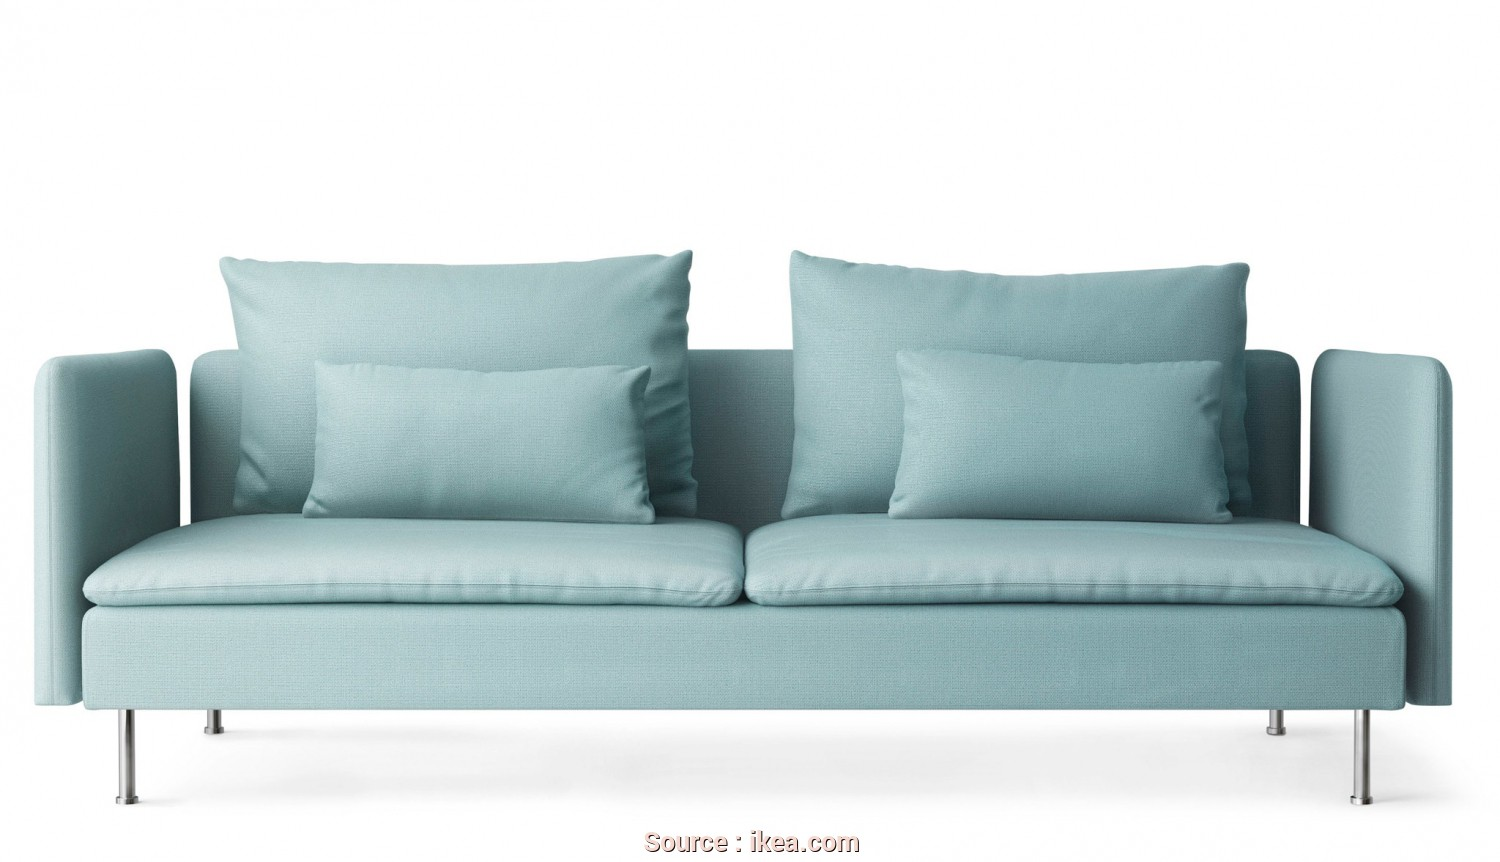 Ikea Divano Knislinge, Freddo An IKEA SÖDERHAMN Three-Seater Sofa In Light Turquoise